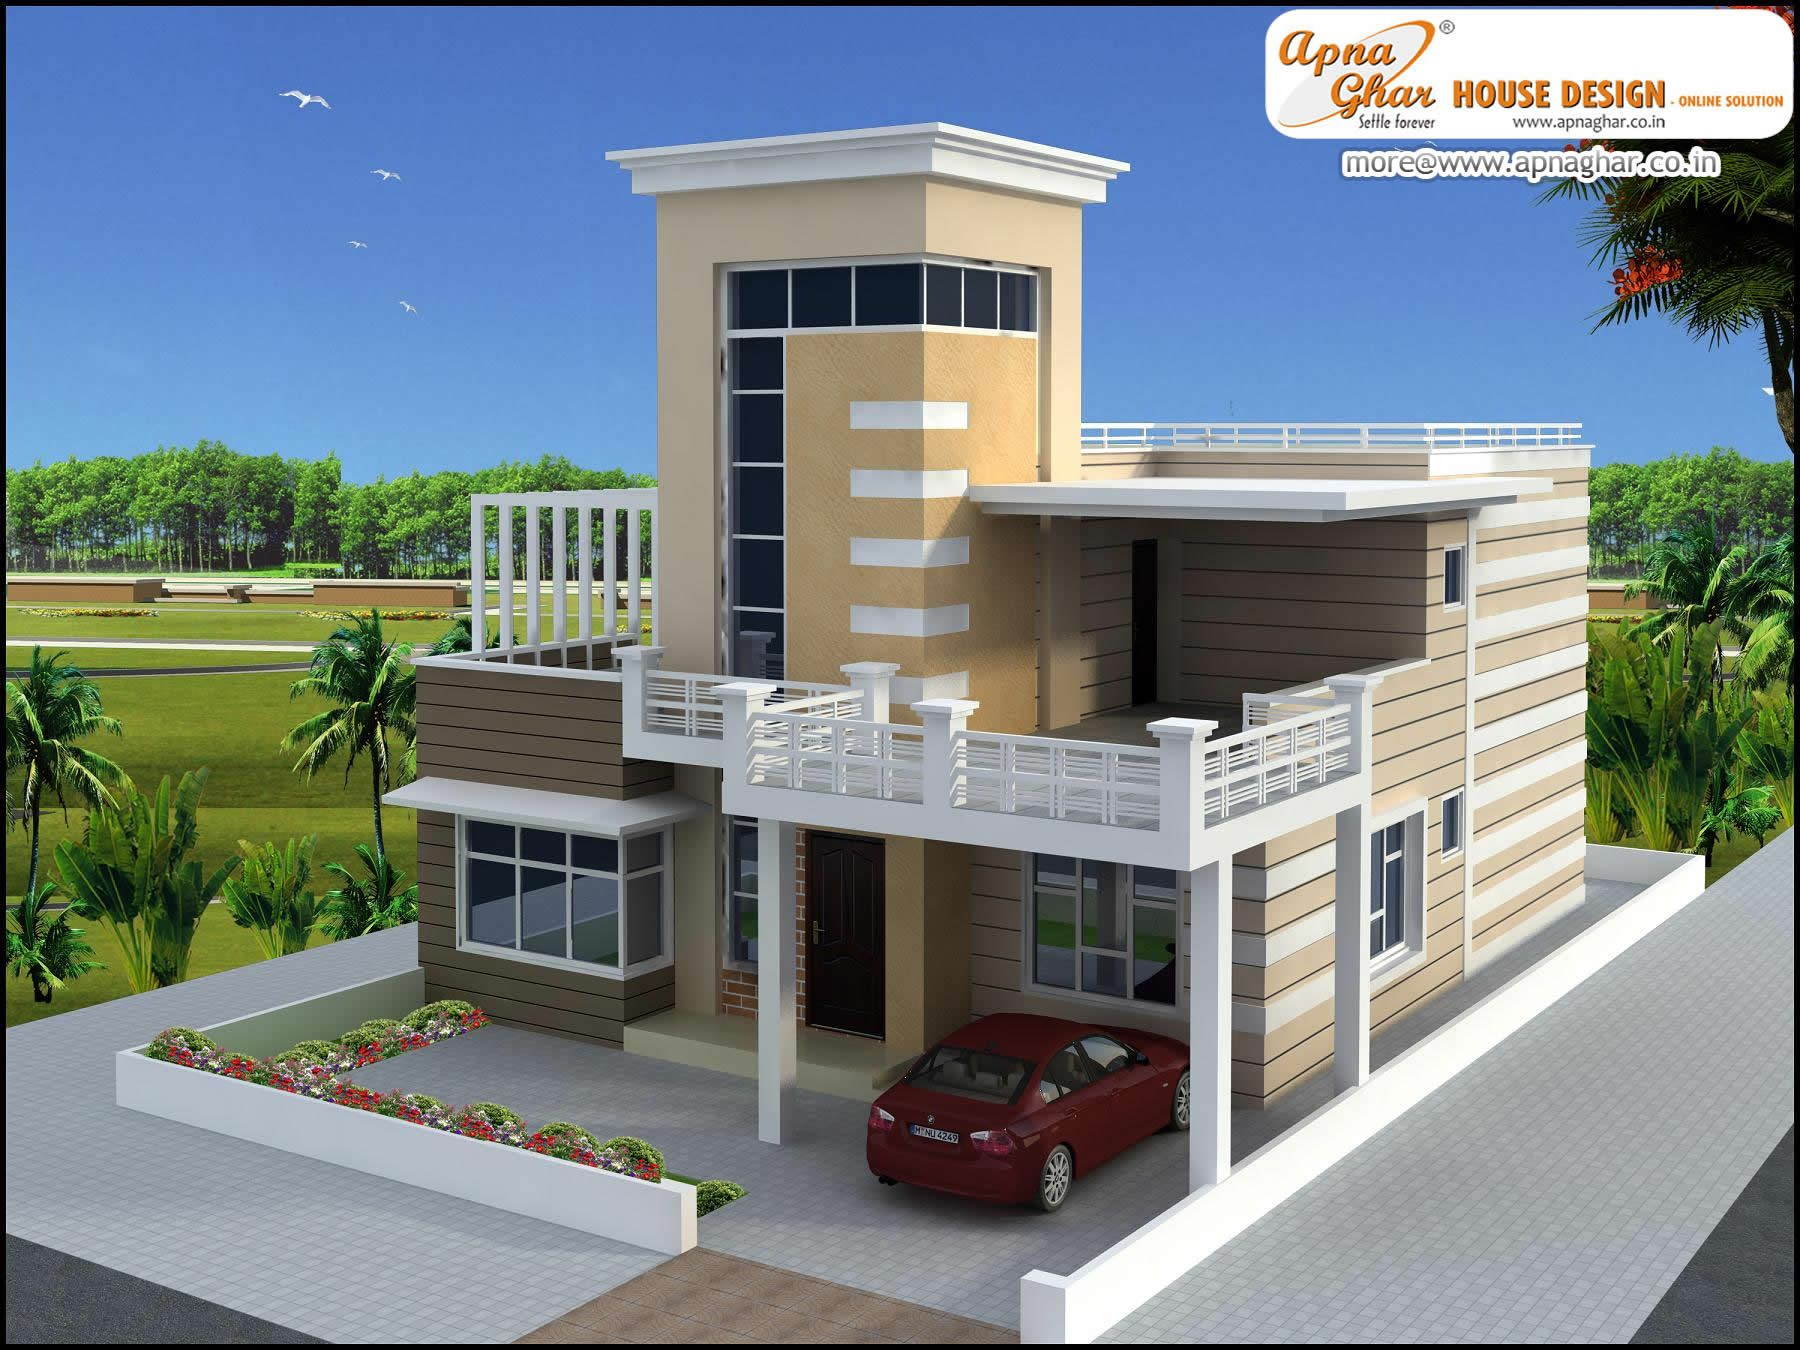 Luxury duplex 2 floors house design area 252m2 21m x Duplex layouts